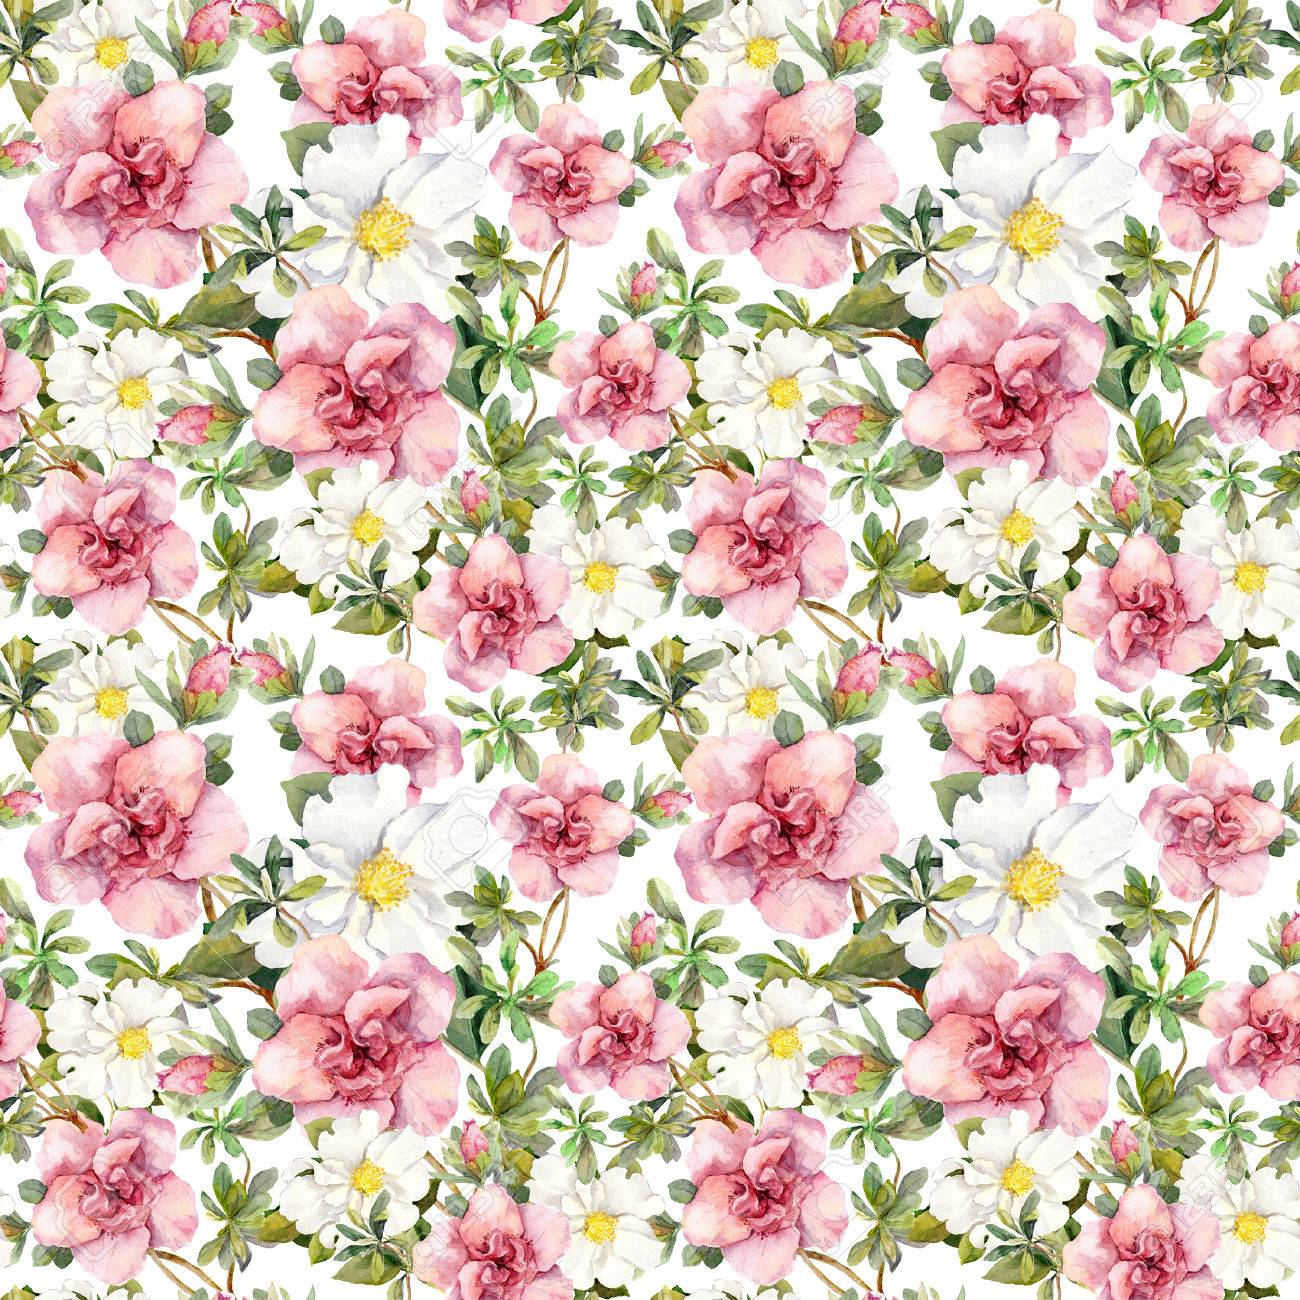 Blooming Pink Flowers Seamless Vintage Floral Pattern Watercolor